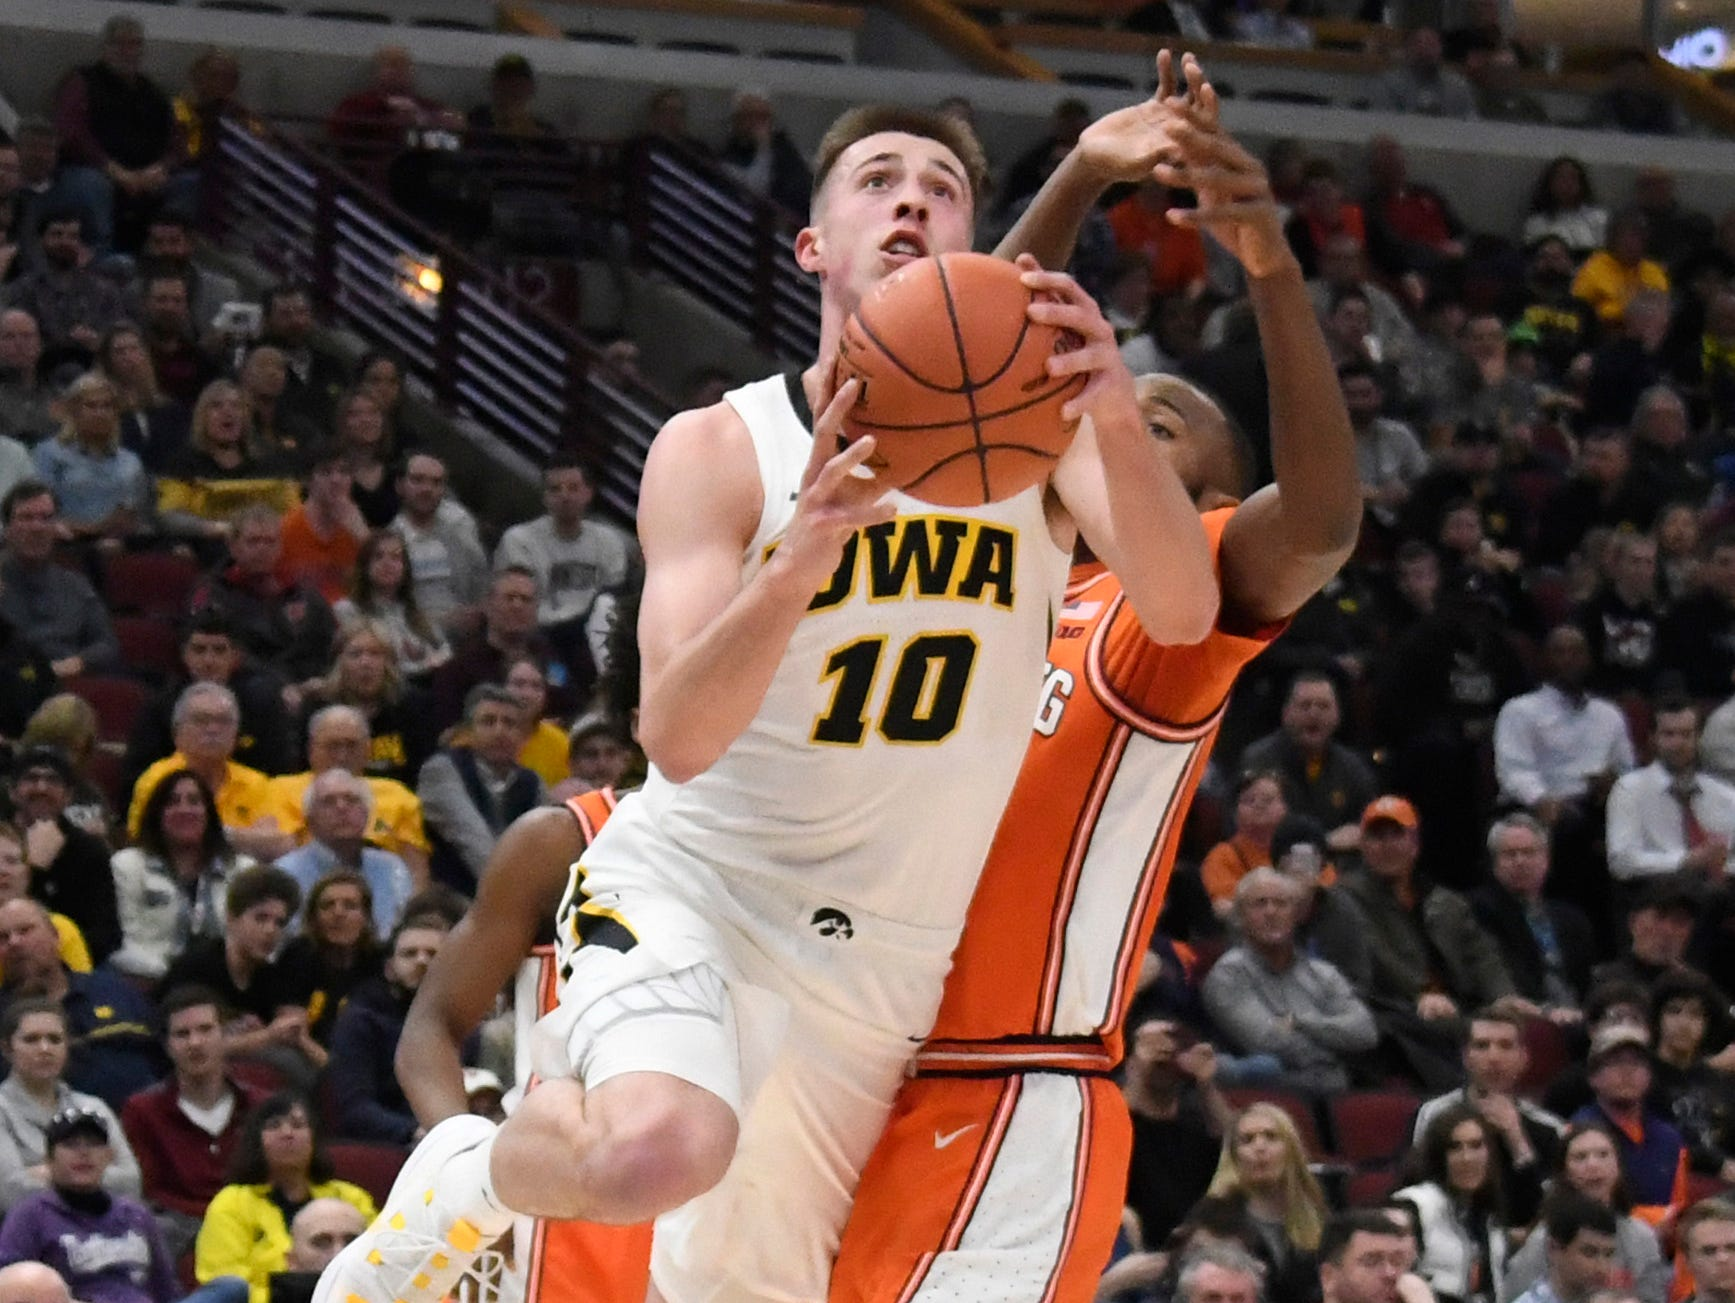 Mar 14, 2019; Chicago, IL, USA;Iowa Hawkeyes guard Joe Wieskamp (10) goes to the basket against the Illinois Fighting Illini during the first half in the Big Ten conference tournament at United Center. Mandatory Credit: David Banks-USA TODAY Sports